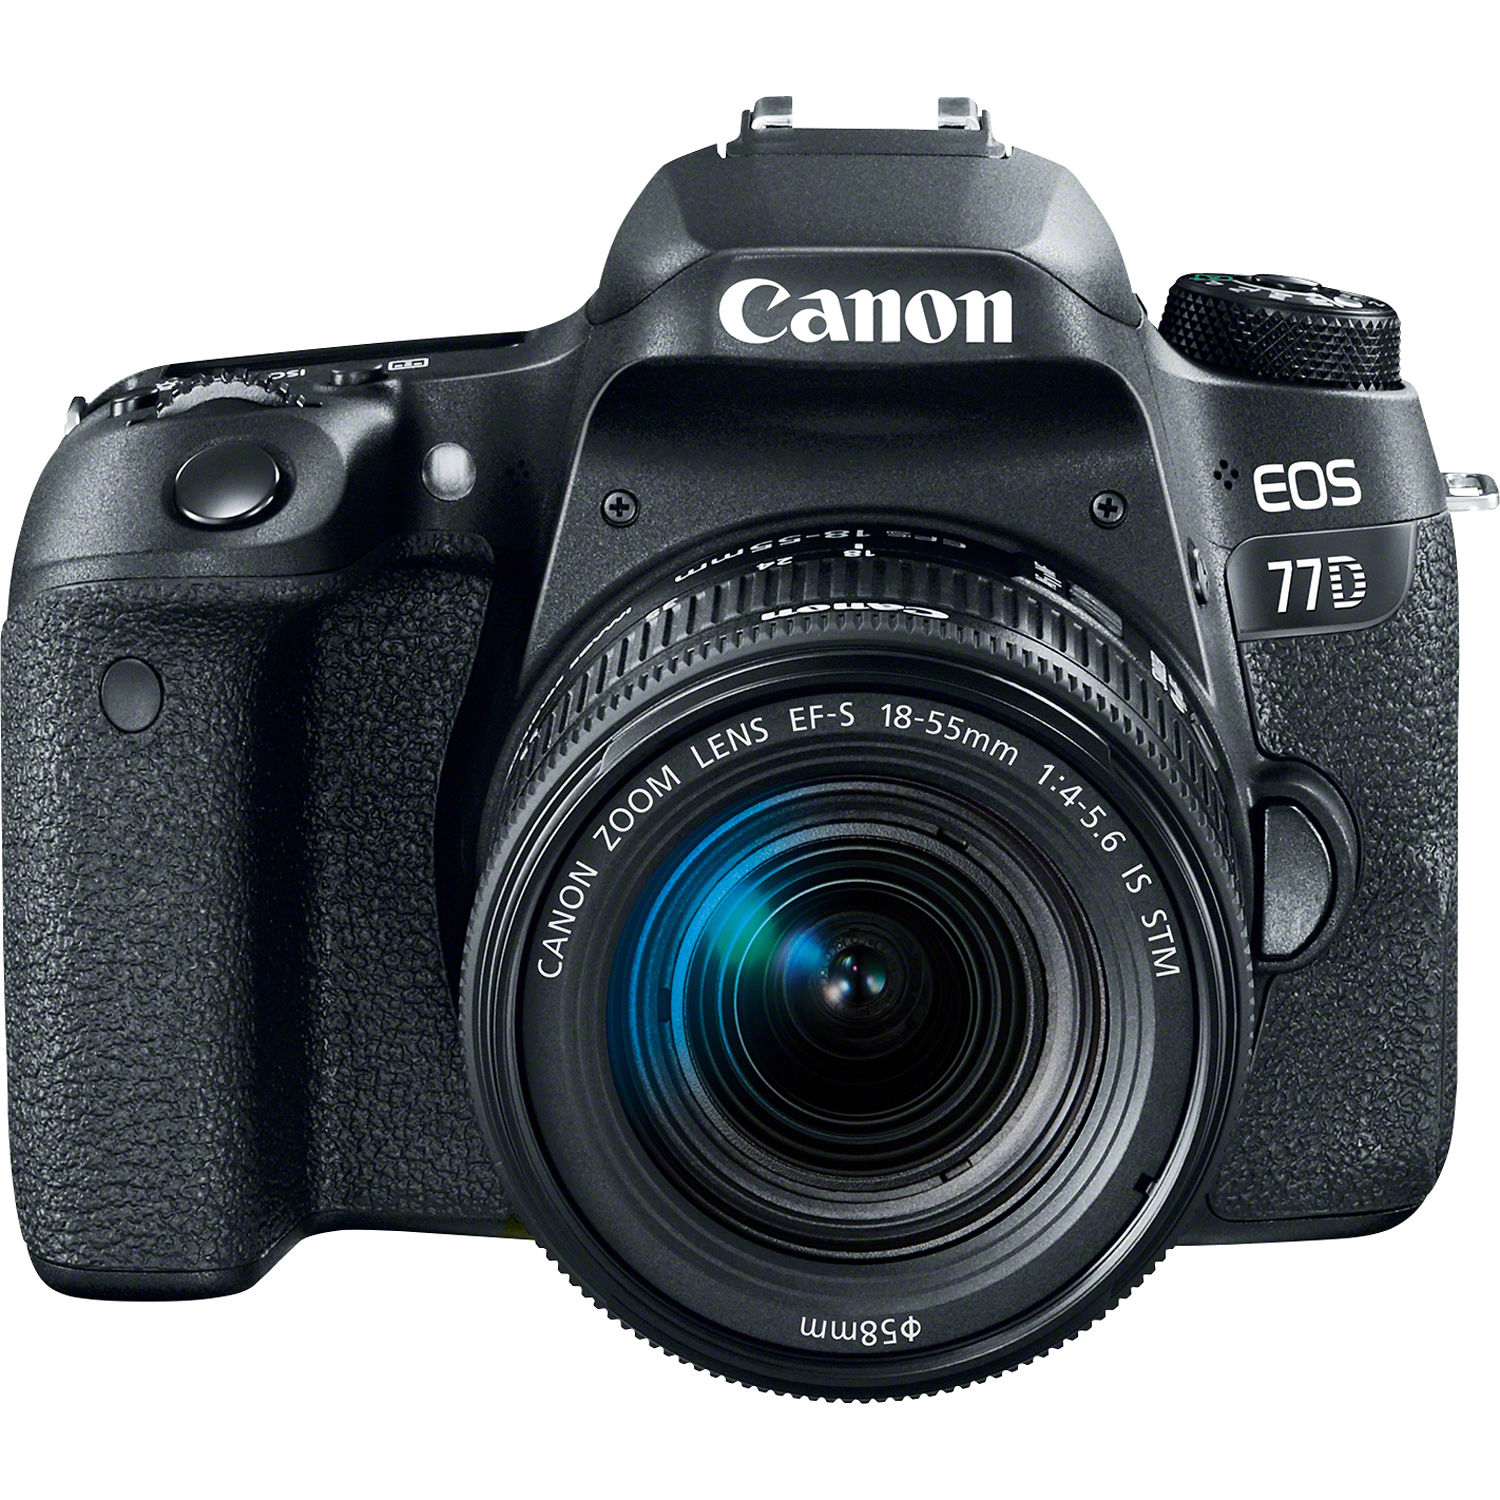 Canon Eos 77d Dslr Camera With 18 55mm Lens